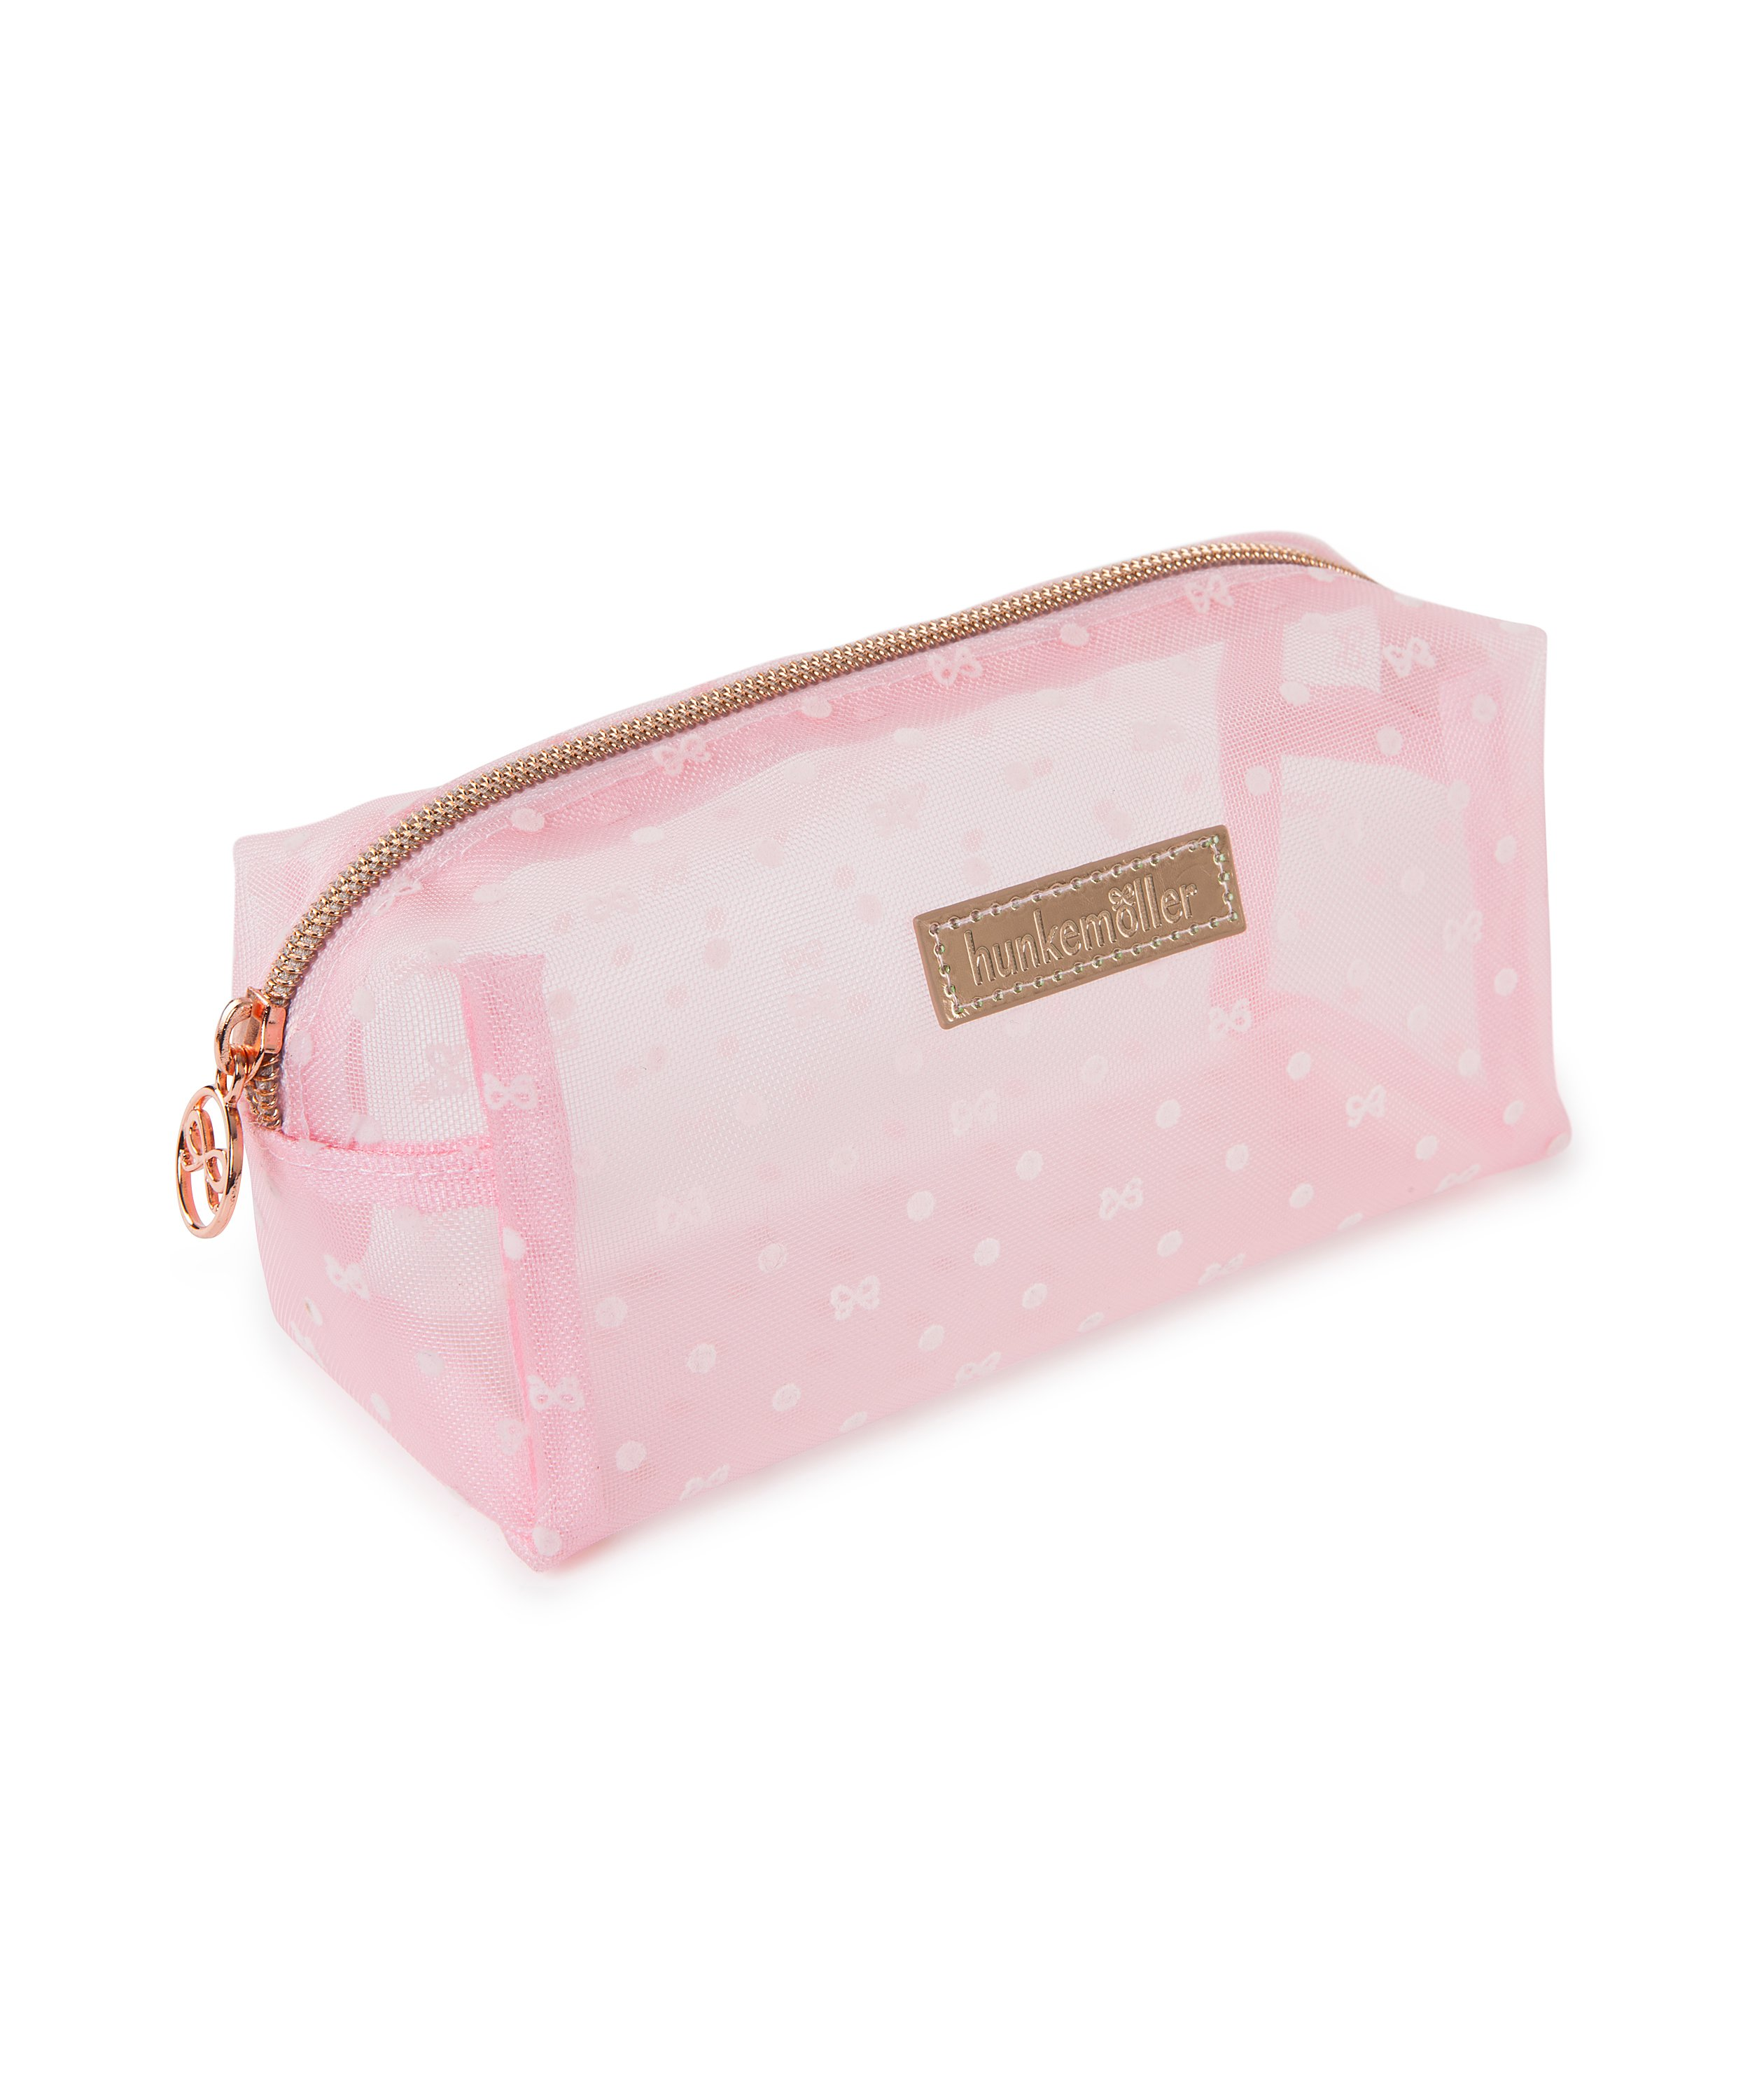 Make-up tas Dot Mesh, Roze, main